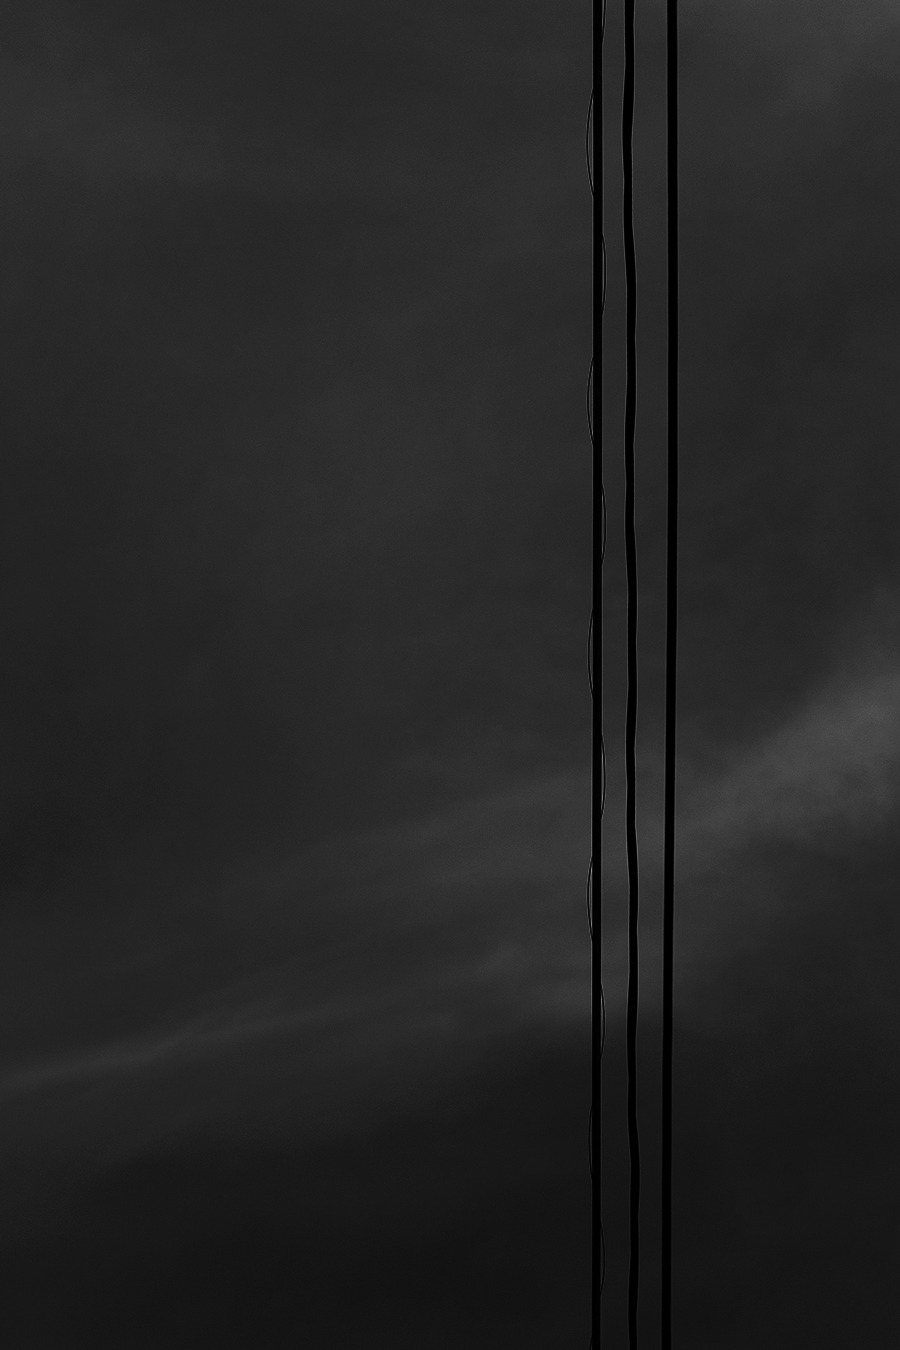 Linda_Ruan_black_and_white_photography_sky_wires_abstraction_still_life